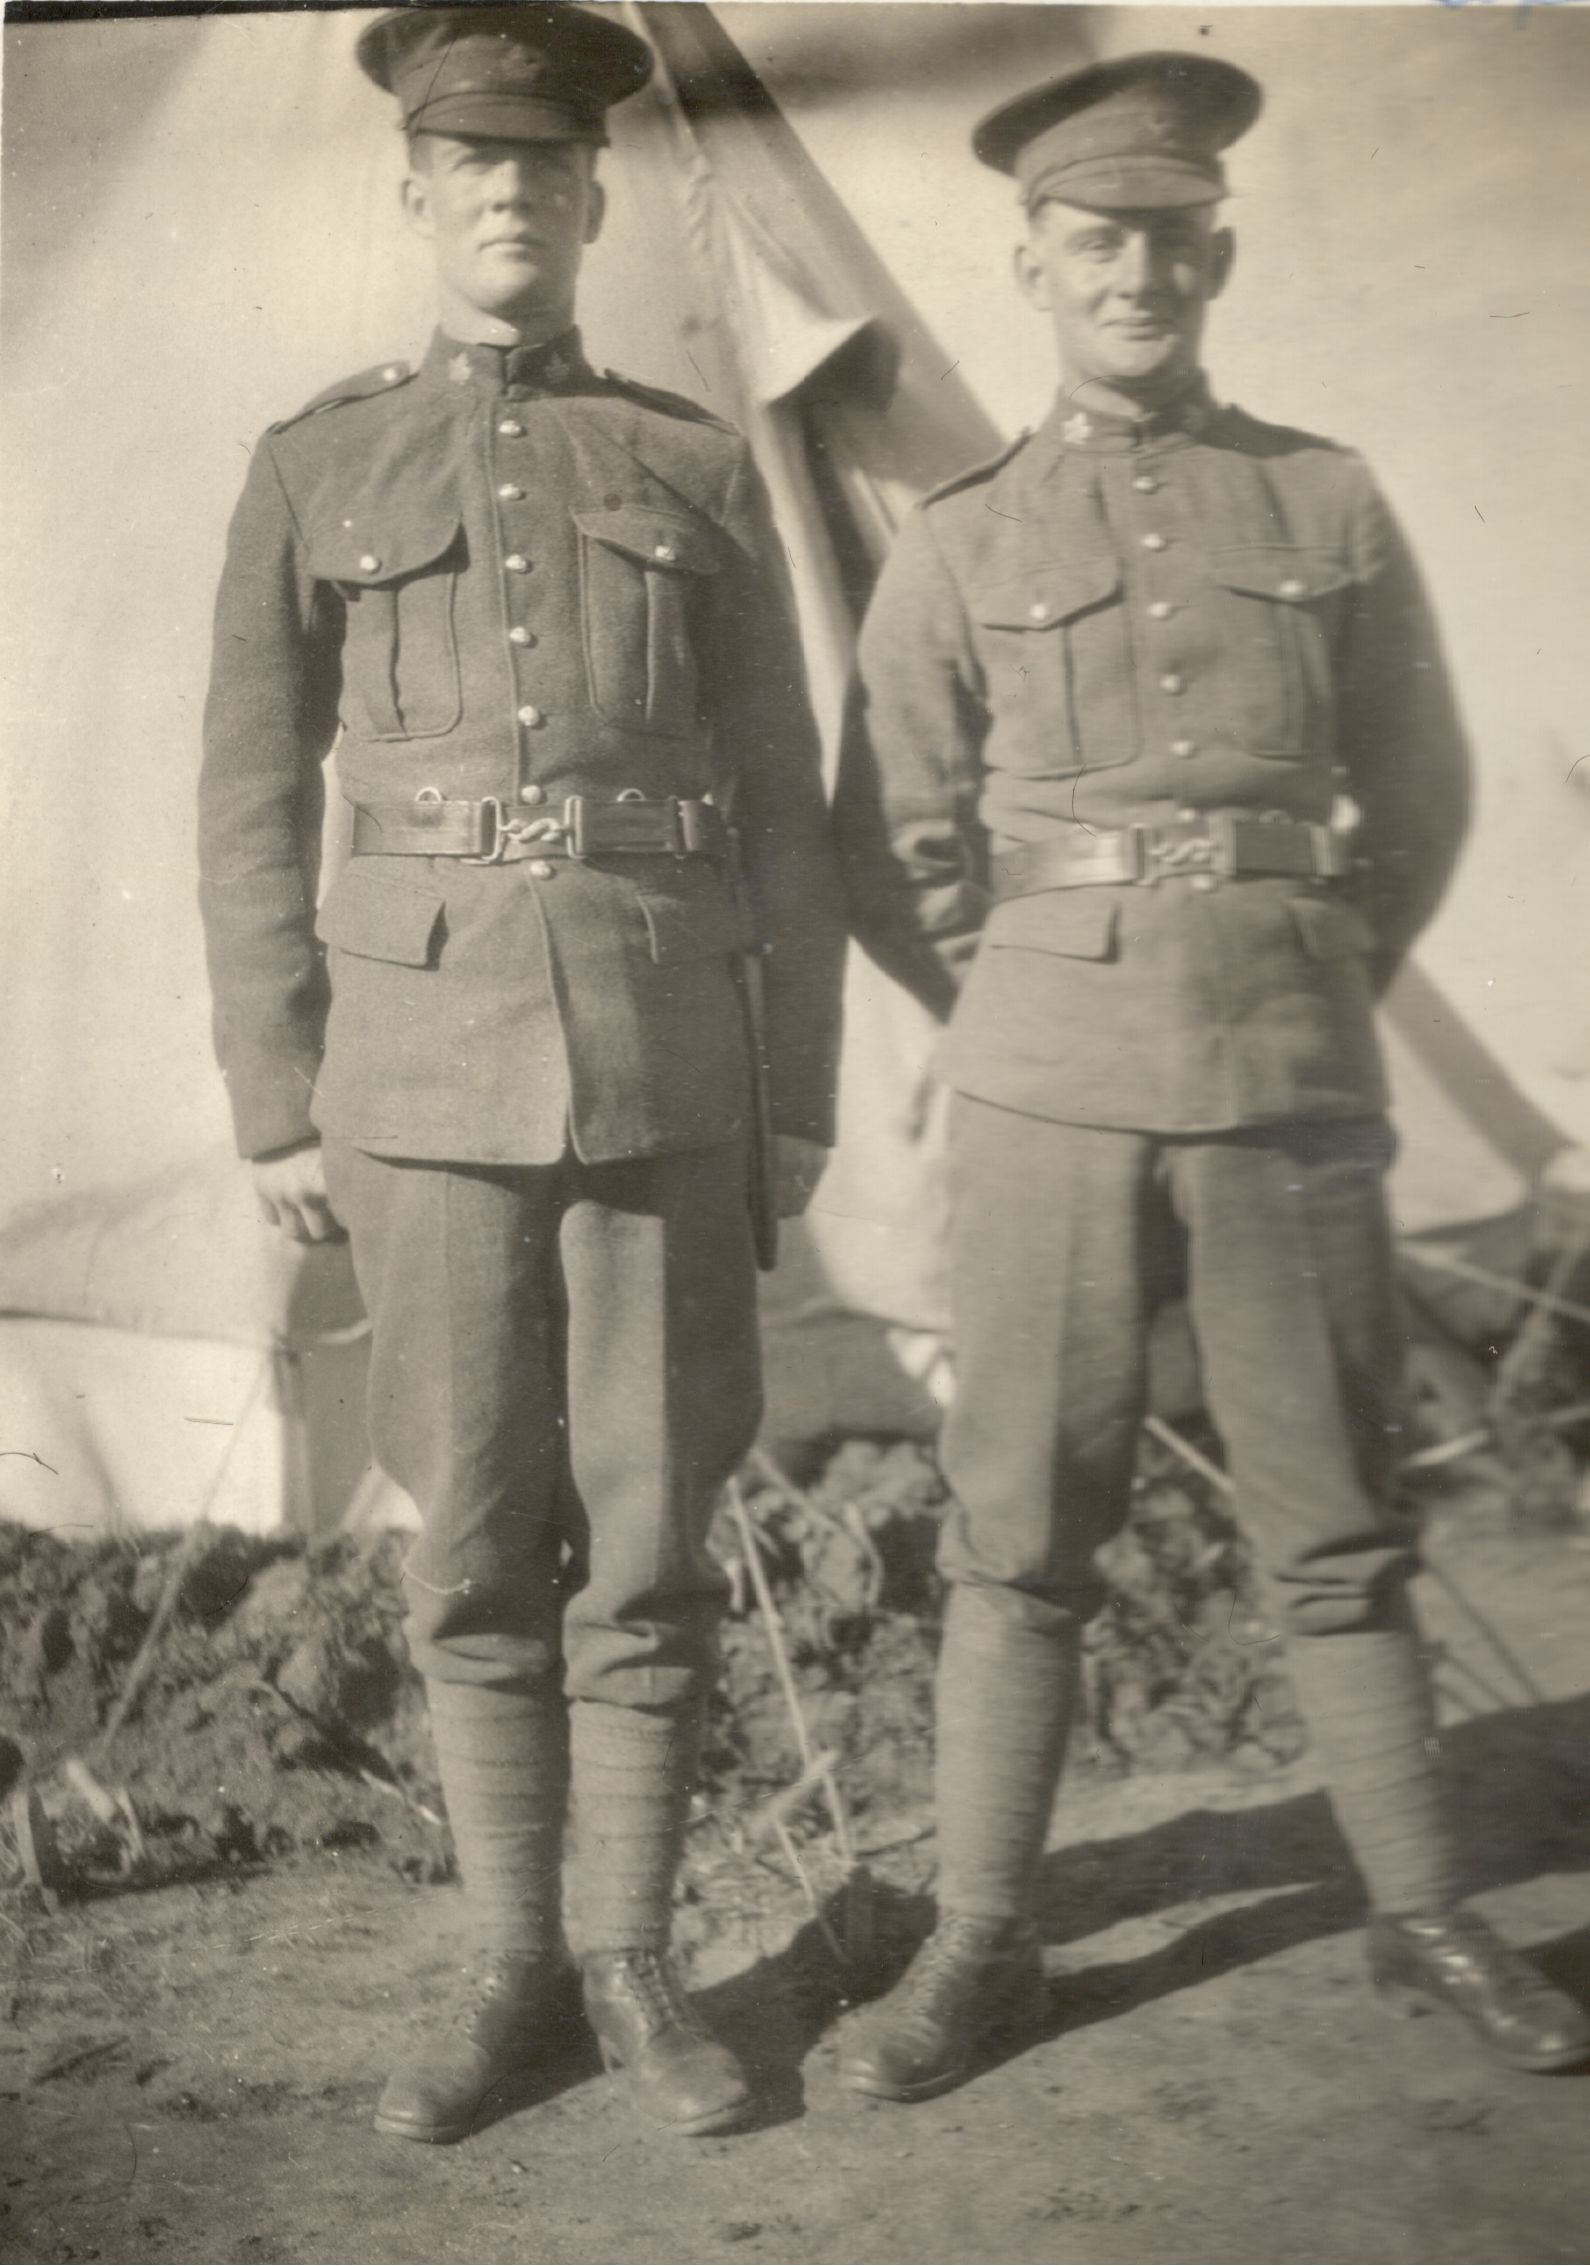 Brothers– William John Andrew 441233 and Oswald Adam Andrew 441232 in 1916.